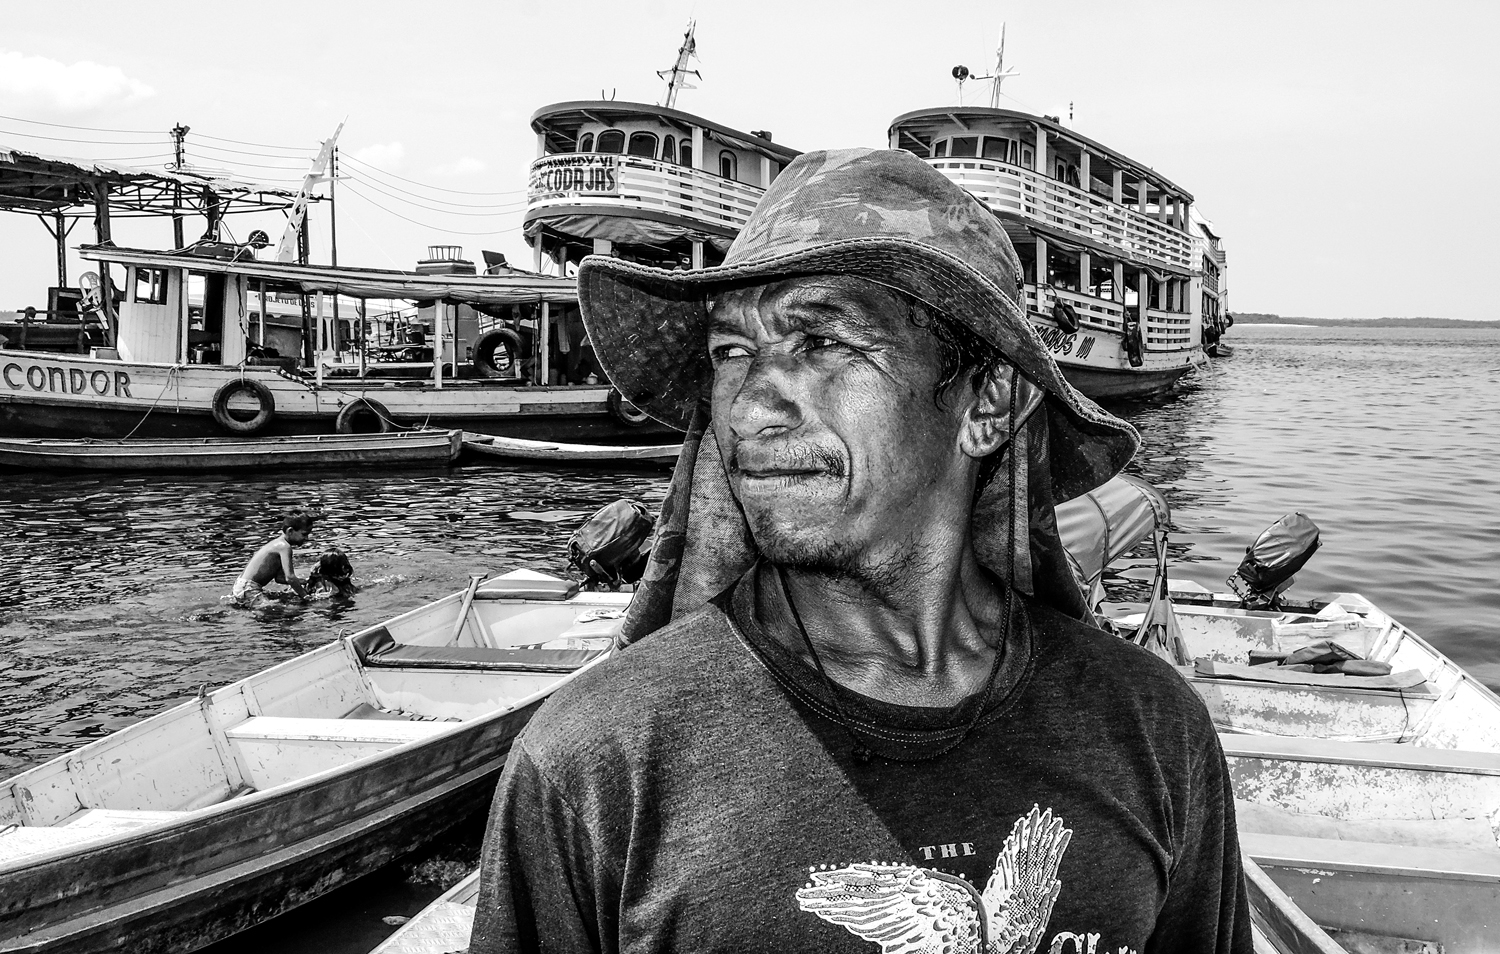 Documenting the Amazon with Fuji